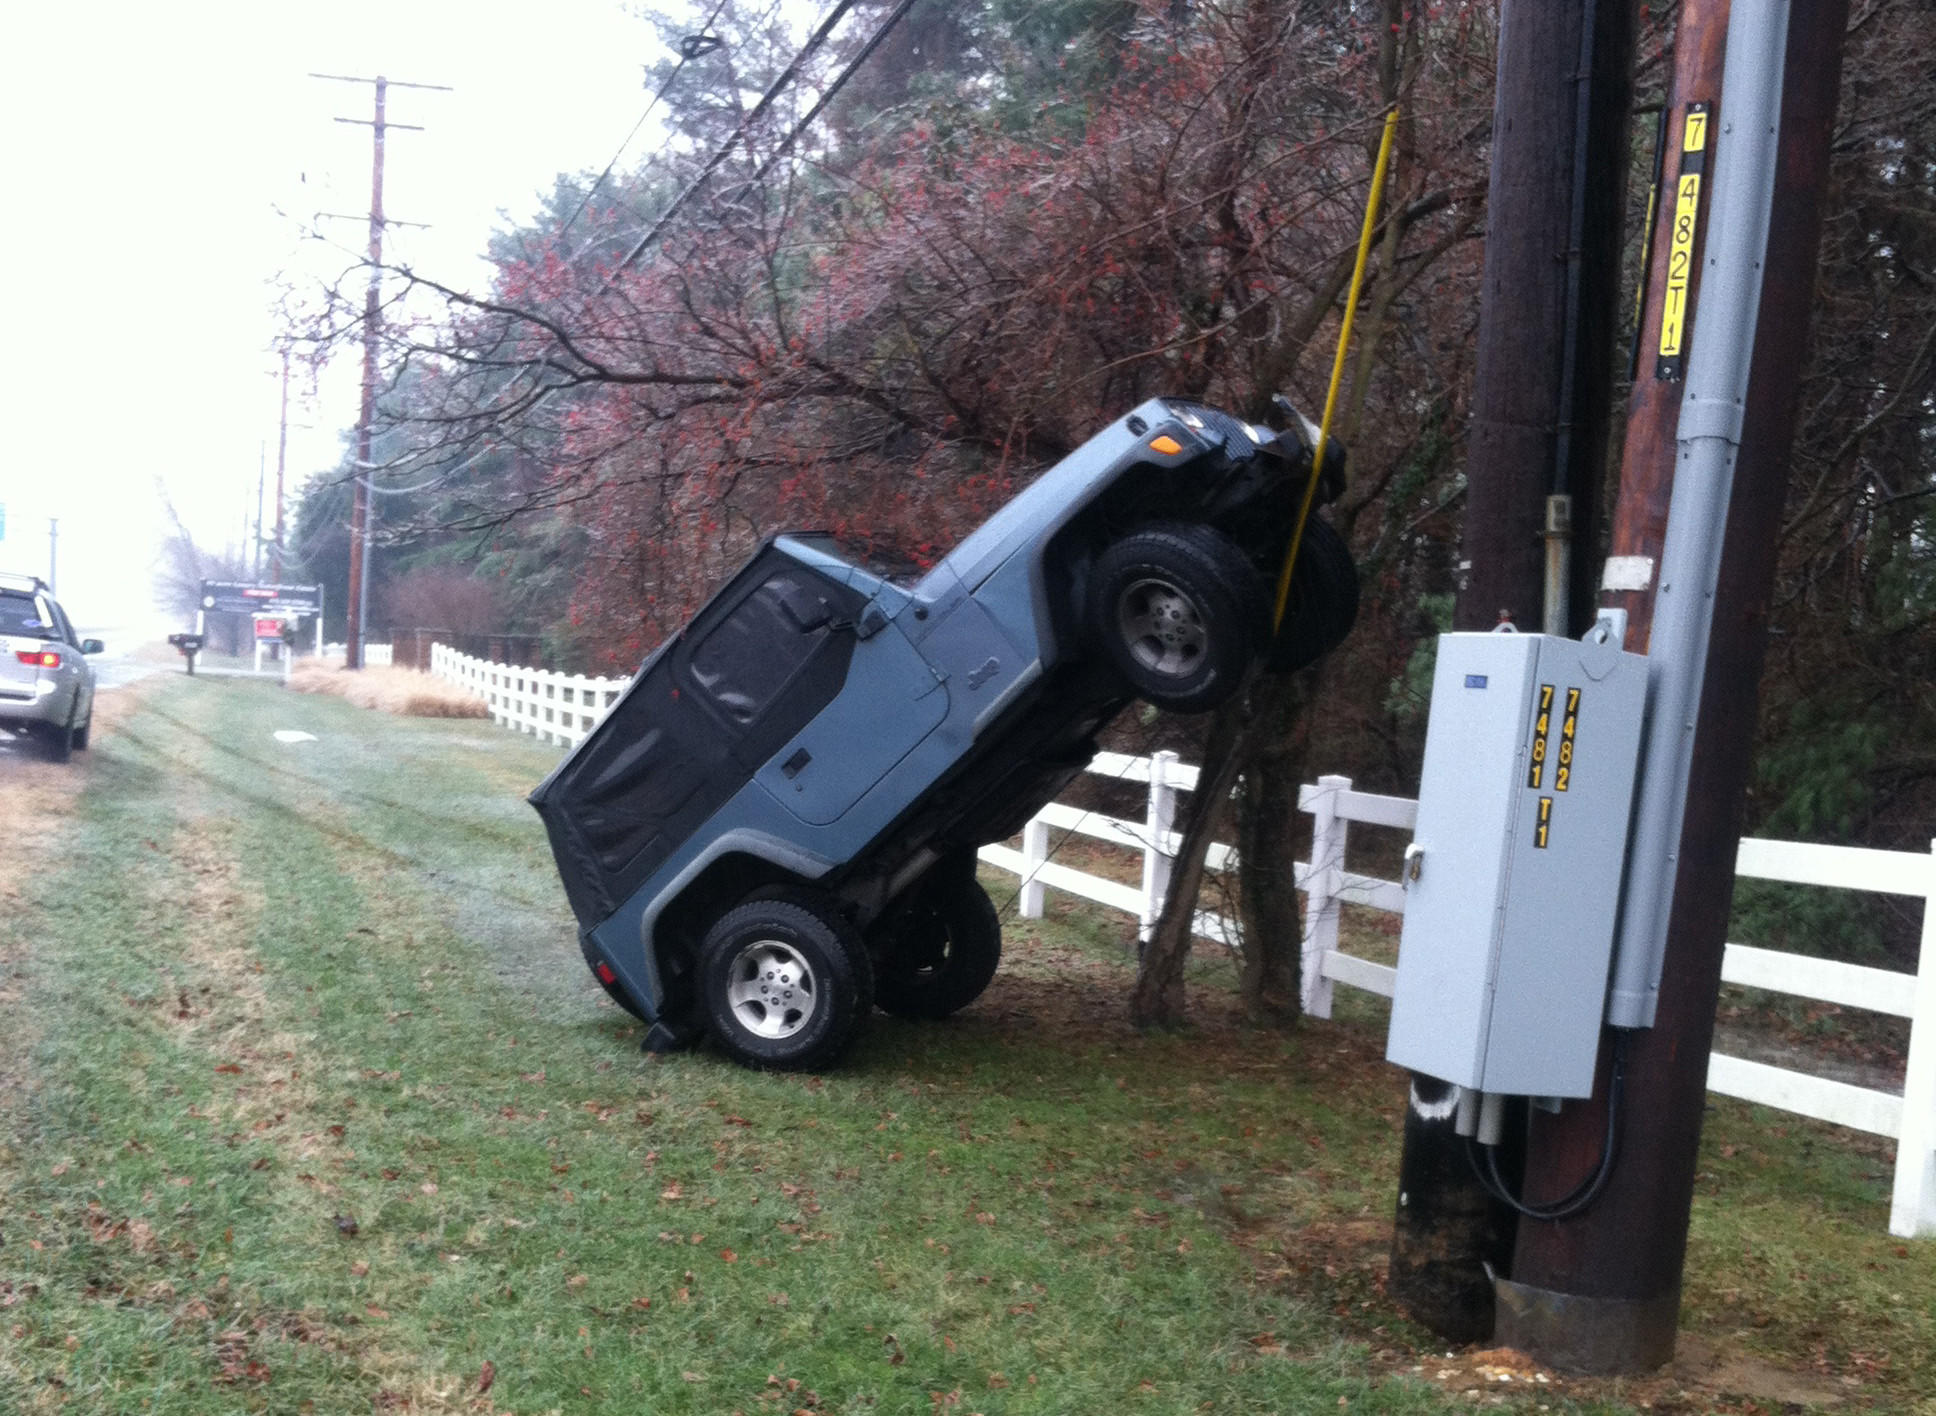 An accident involving a Jeep and a utility pole in Annapolis was among more than 70 incidents reported in Anne Arundel County on Friday related to weather.